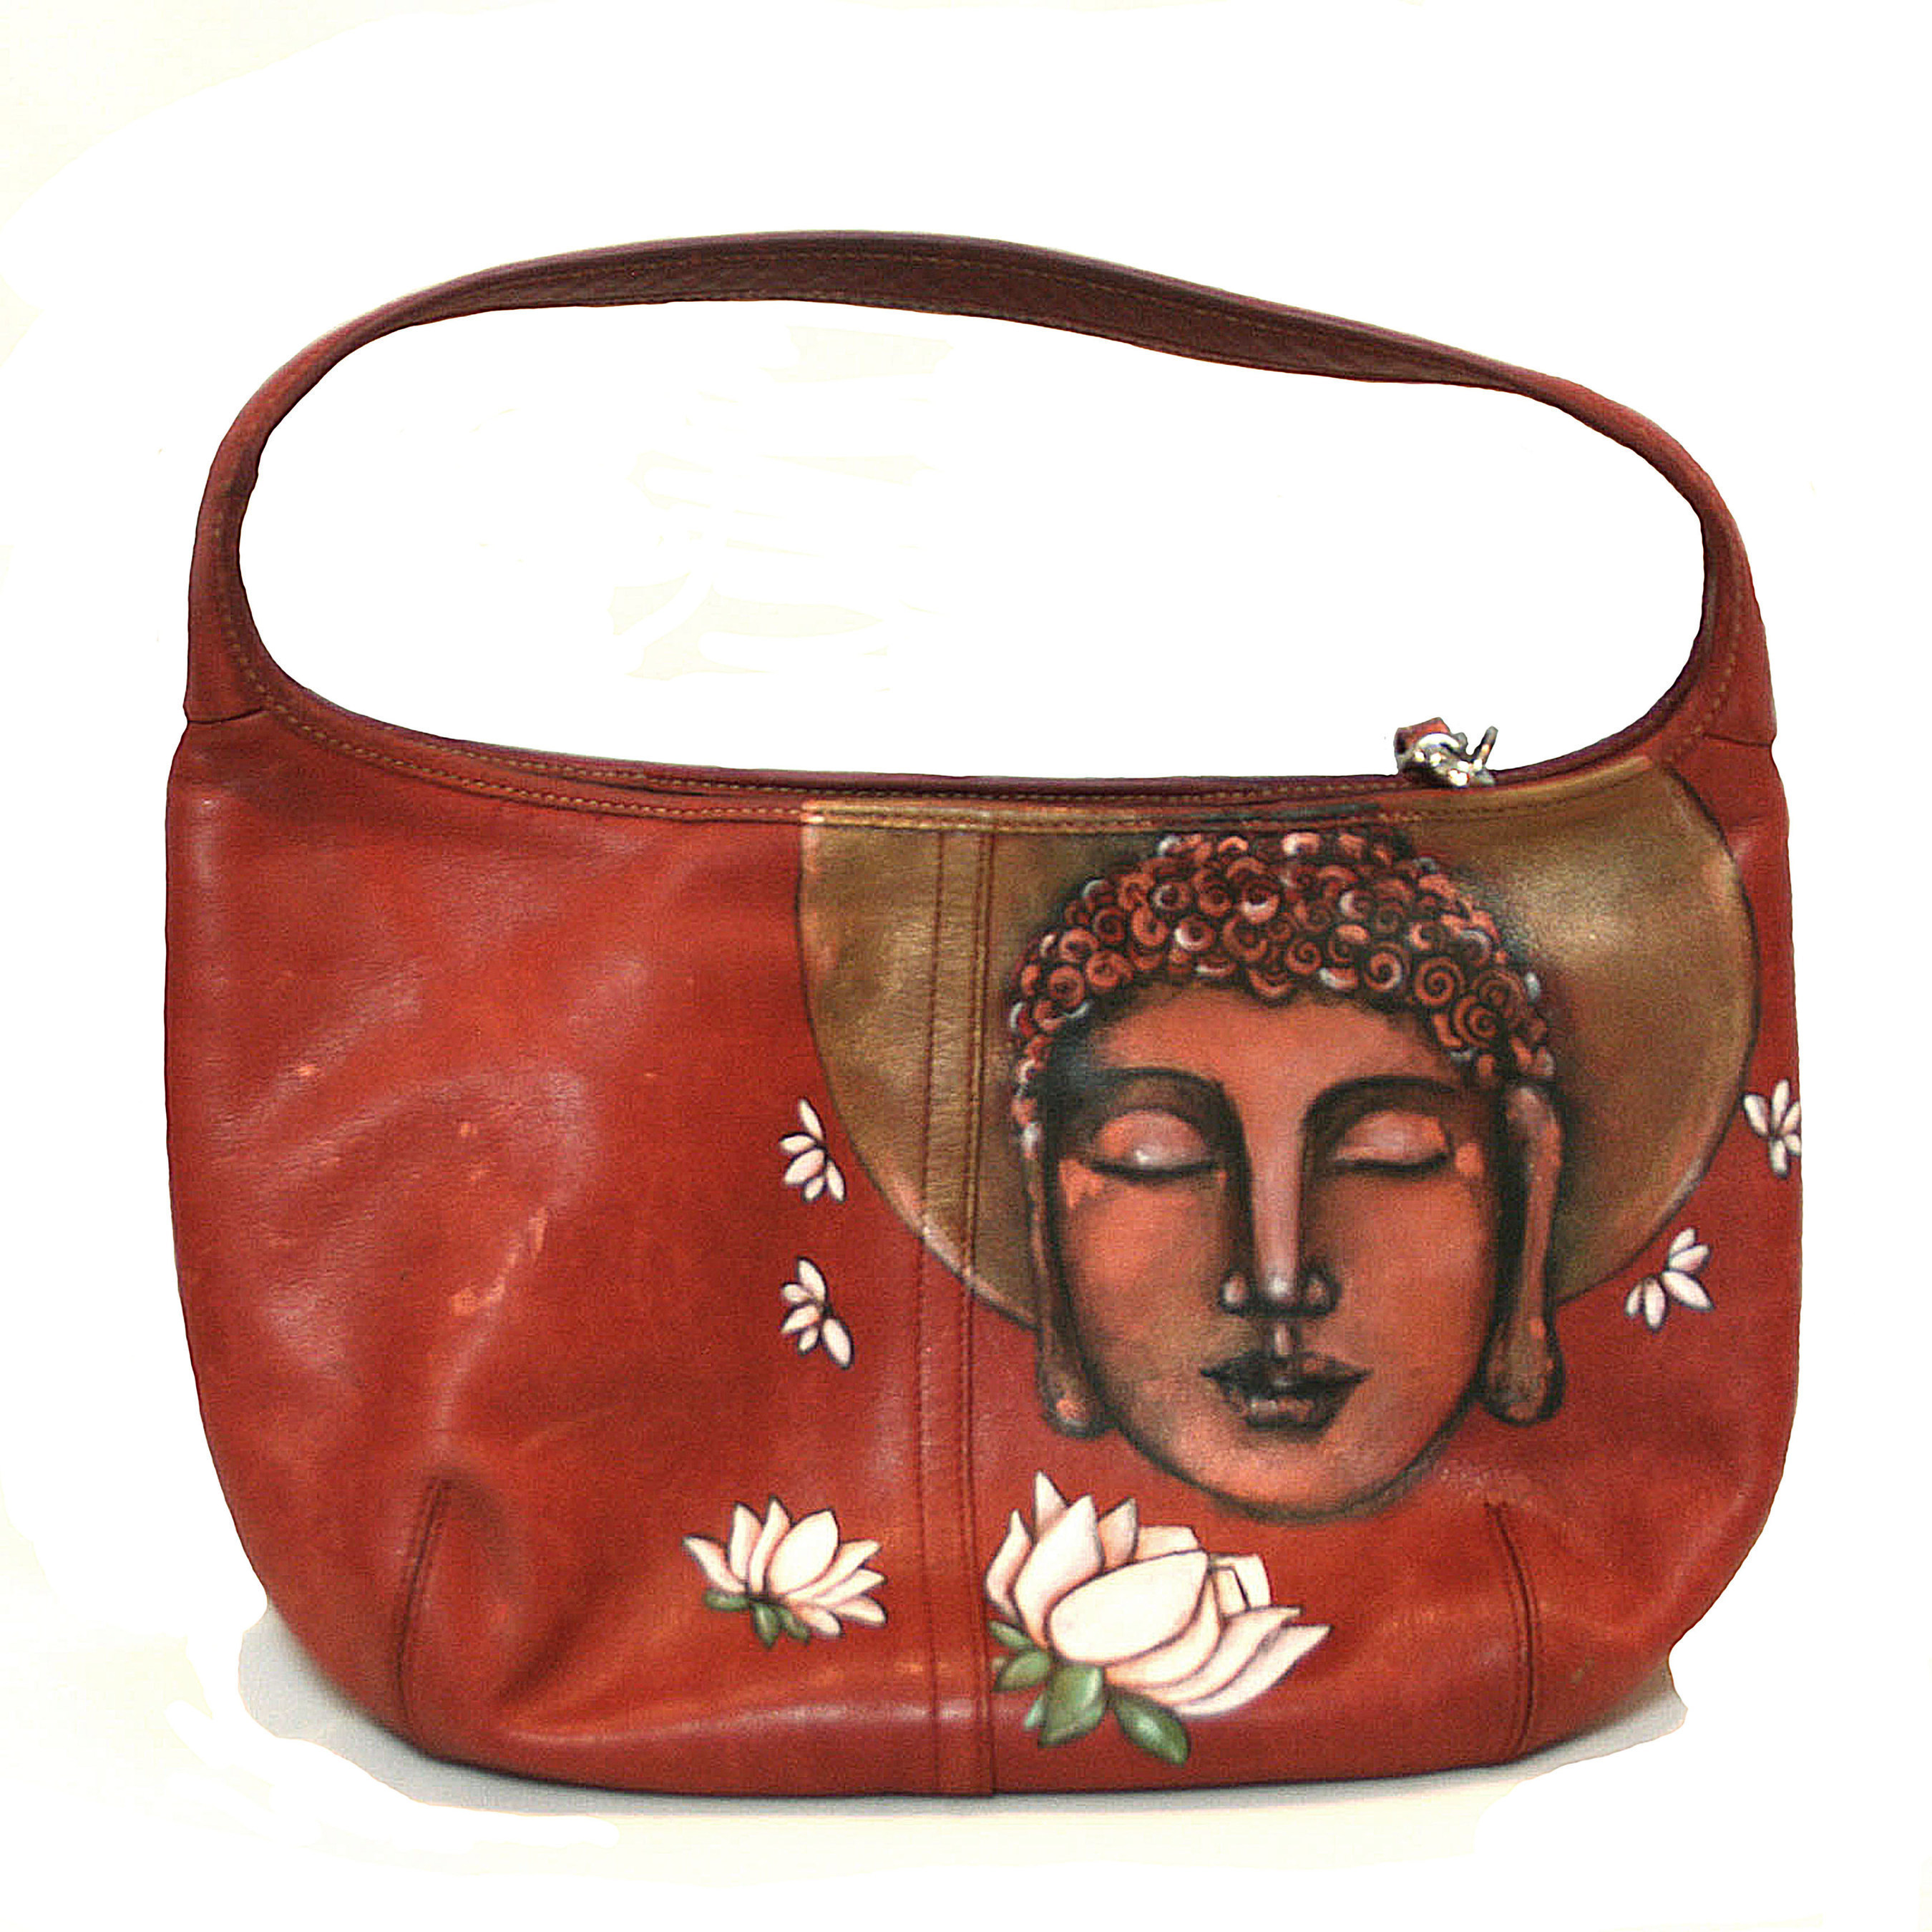 Artists Claudia and Sergio Olivos Present Their Namaste Collection to Welcome the Spirit of Zen Into Your Life